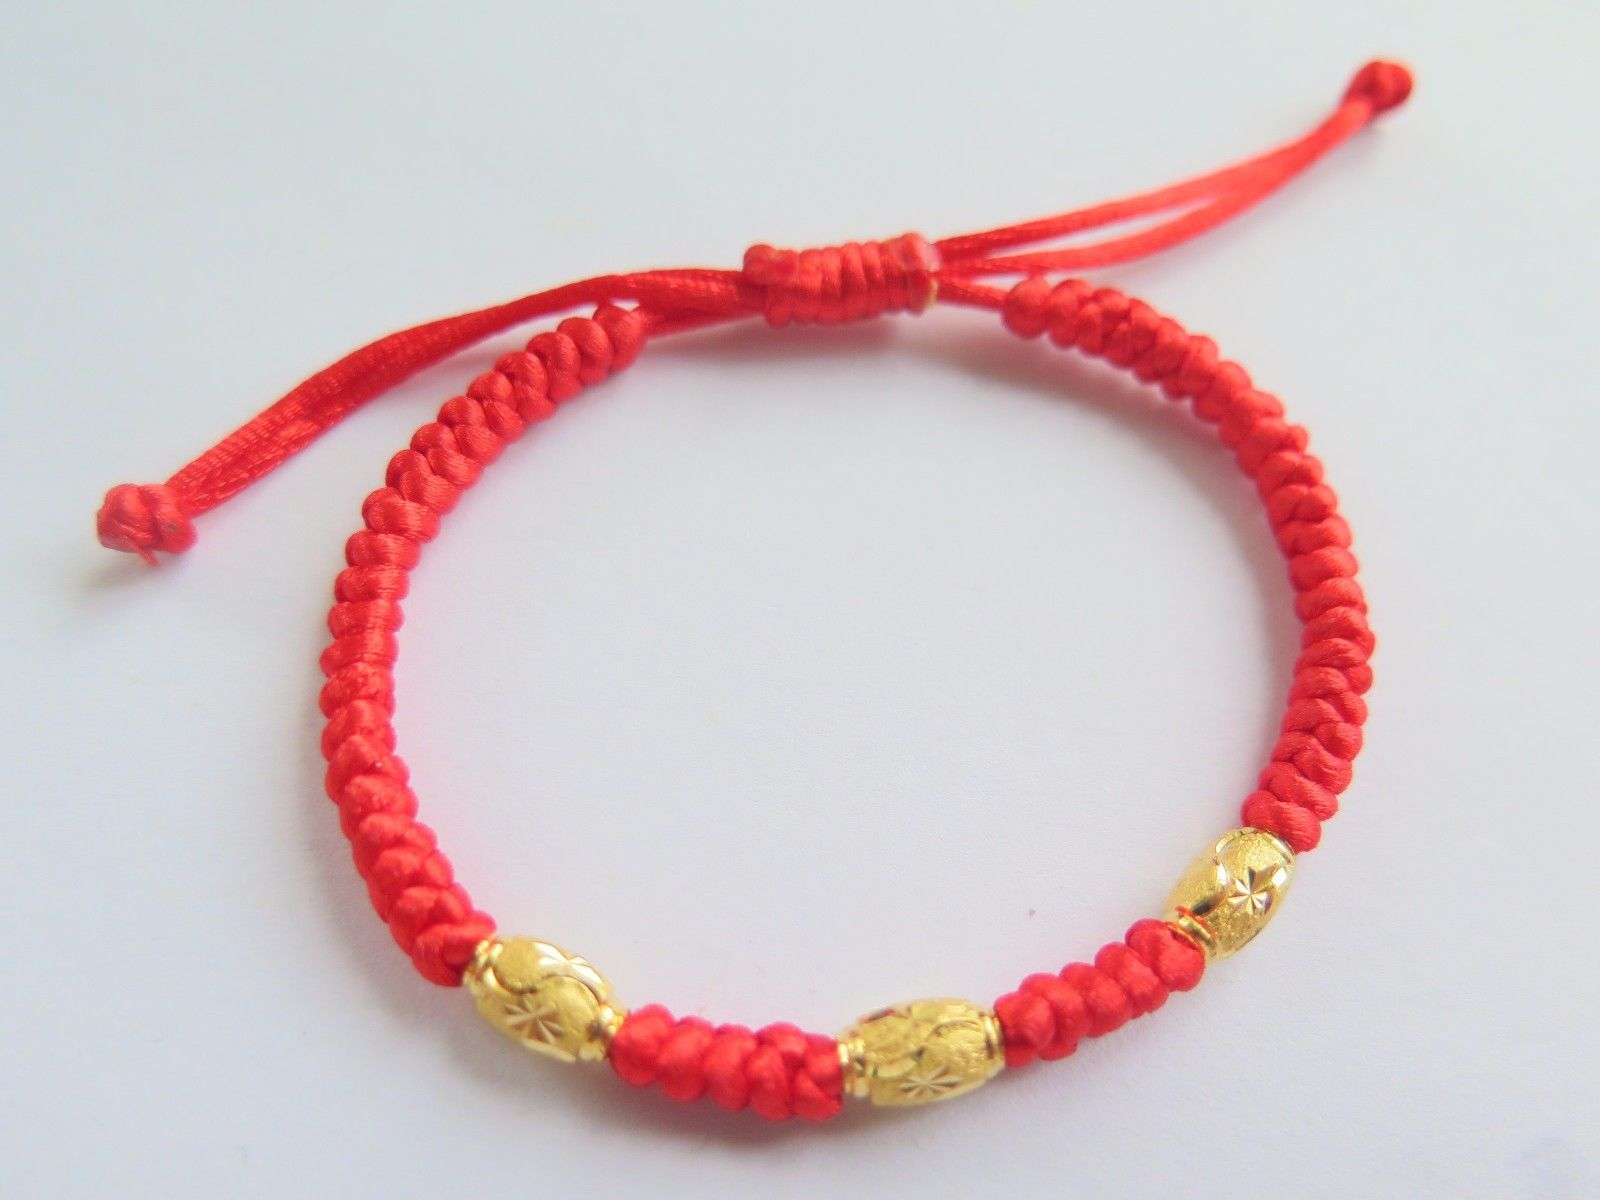 999 24K Yellow Gold Bracelet Women & Men Weave With Bead 6.7999 24K Yellow Gold Bracelet Women & Men Weave With Bead 6.7